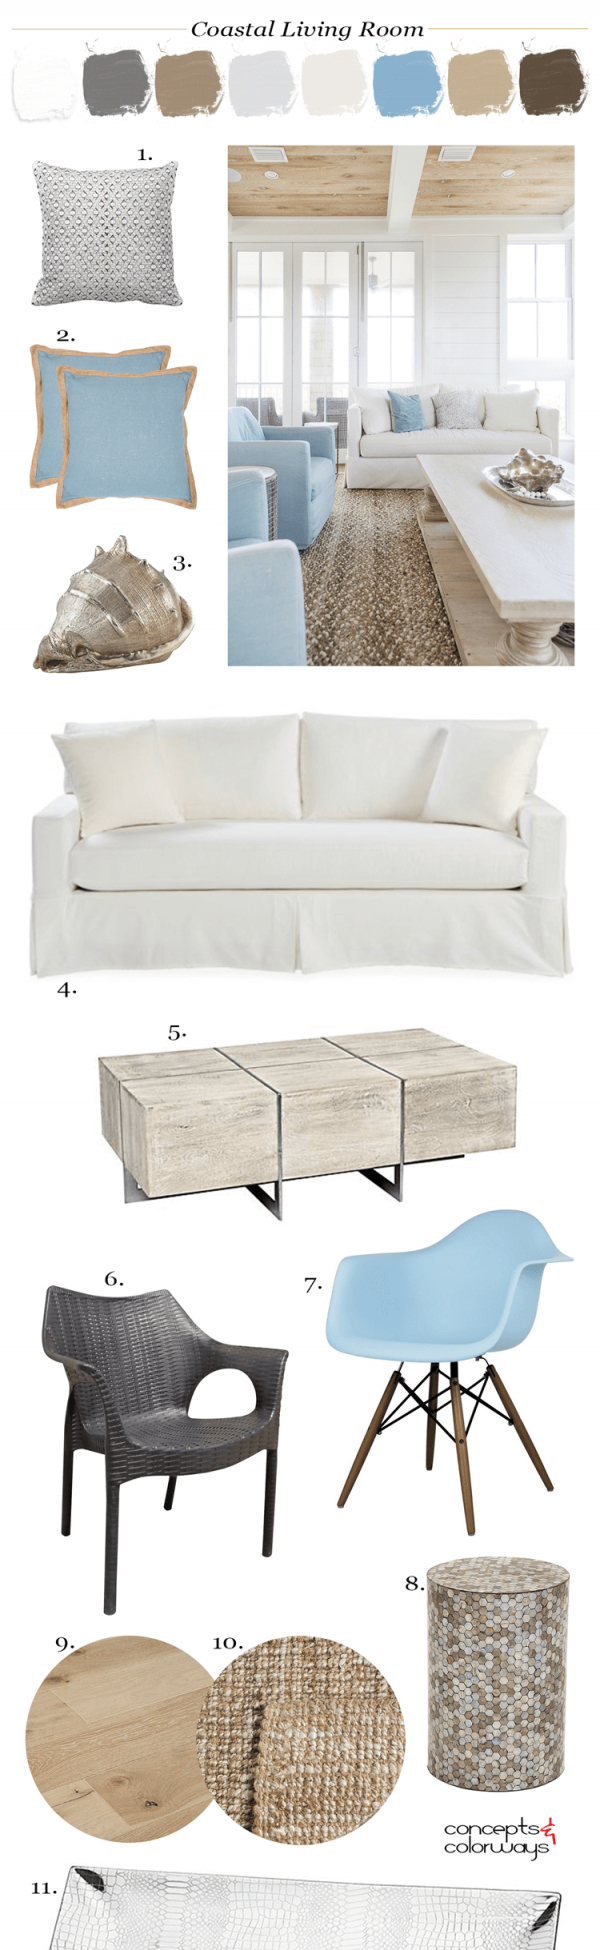 A Tan And Blue Color Palette For Coastal Living Rooms inside 10+ Inspiration For Blue And Tan Living Room